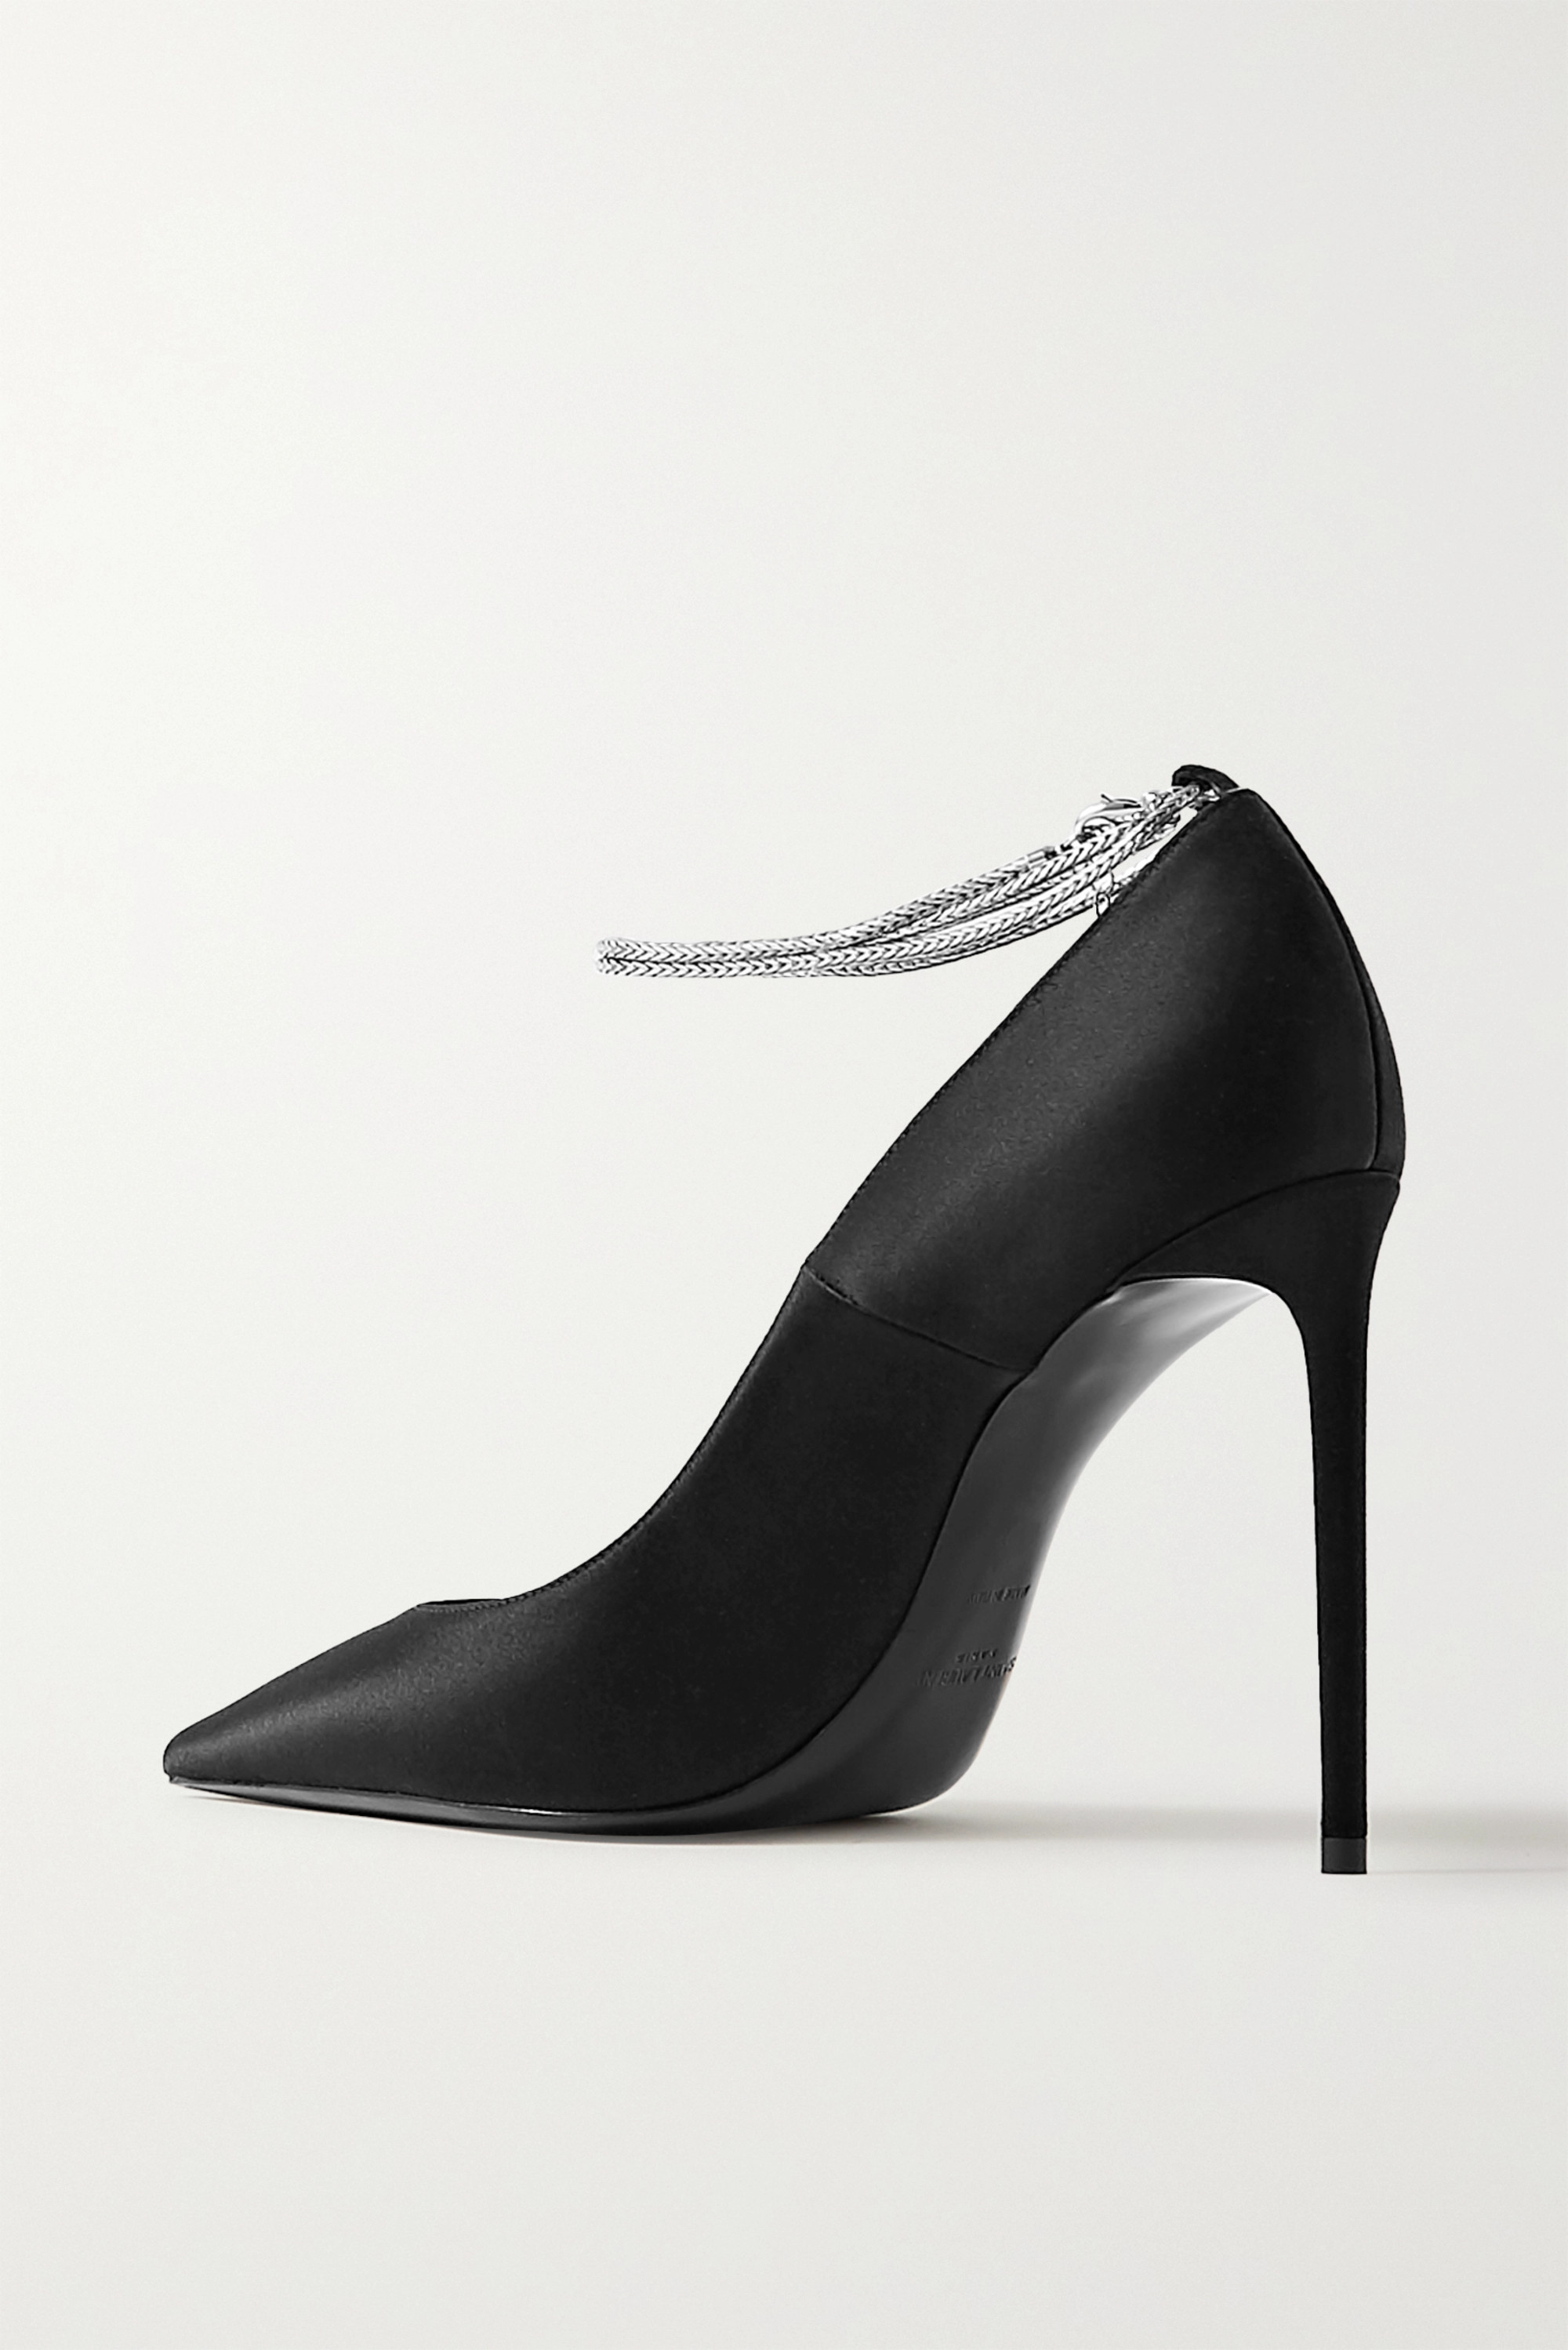 SAINT LAURENT Zoe chain-embellished satin pumps